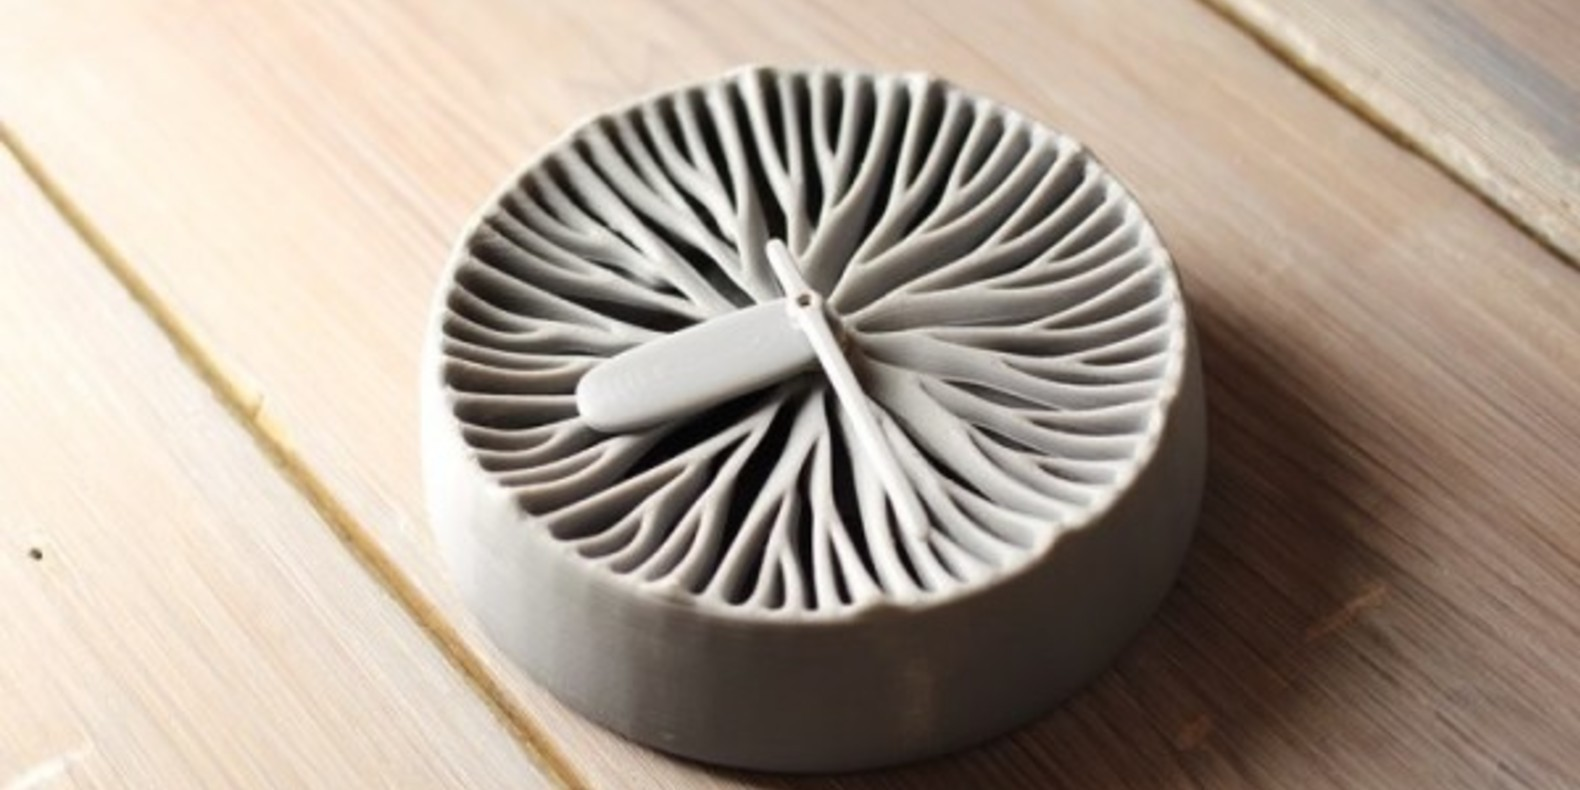 Pekka Salokannel creates a 3D printed clock